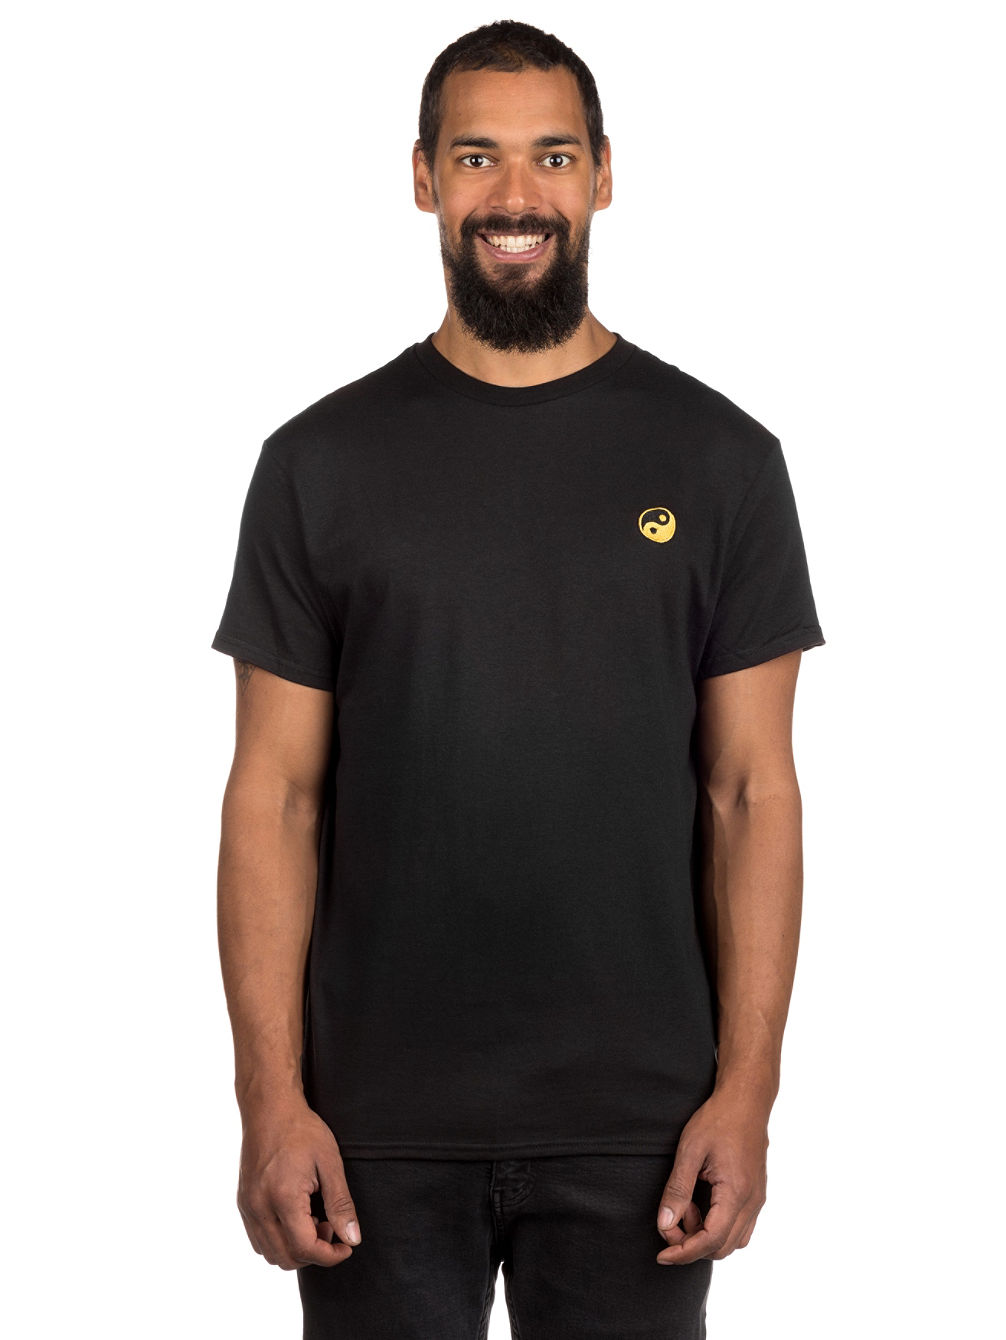 Yin Yang Embroidery T-Shirt